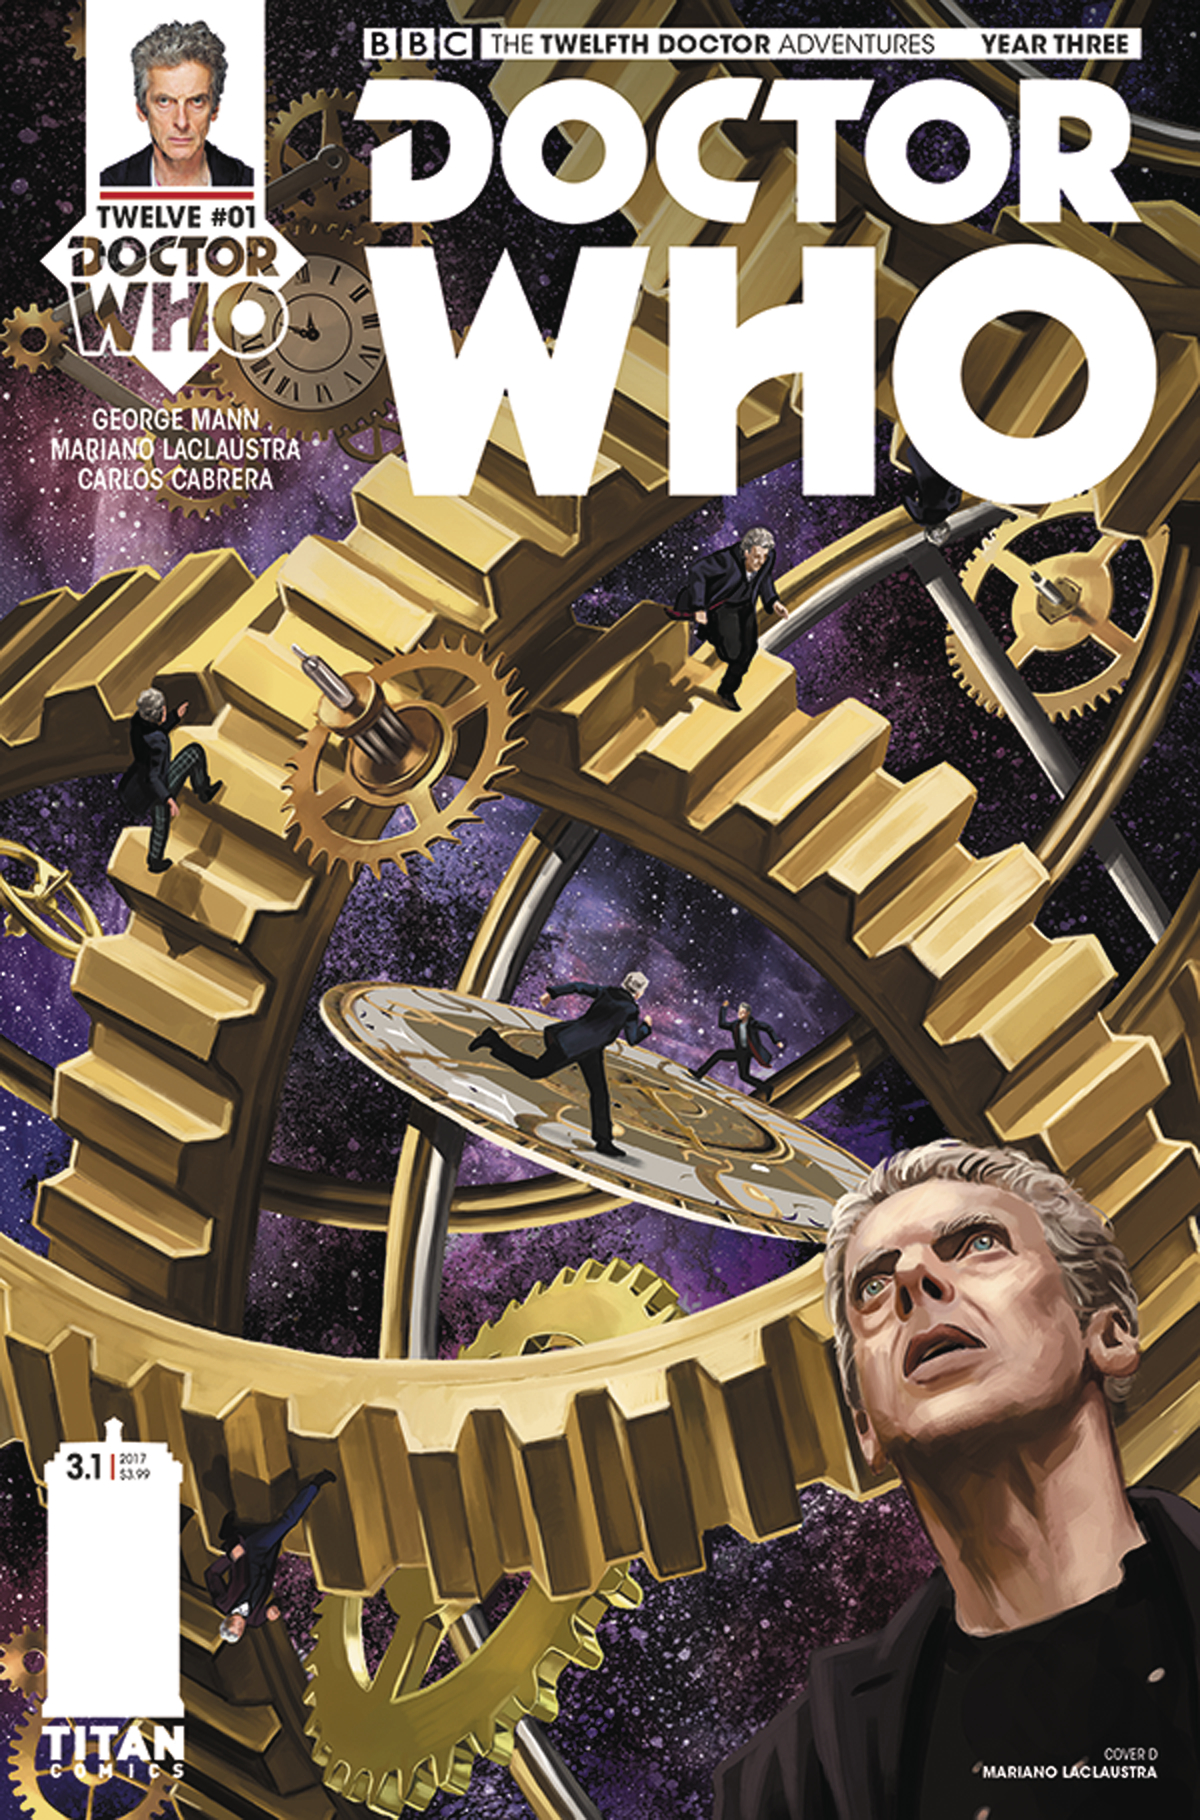 DOCTOR WHO 12TH YEAR THREE #1 CVR D LACLAUSTRA